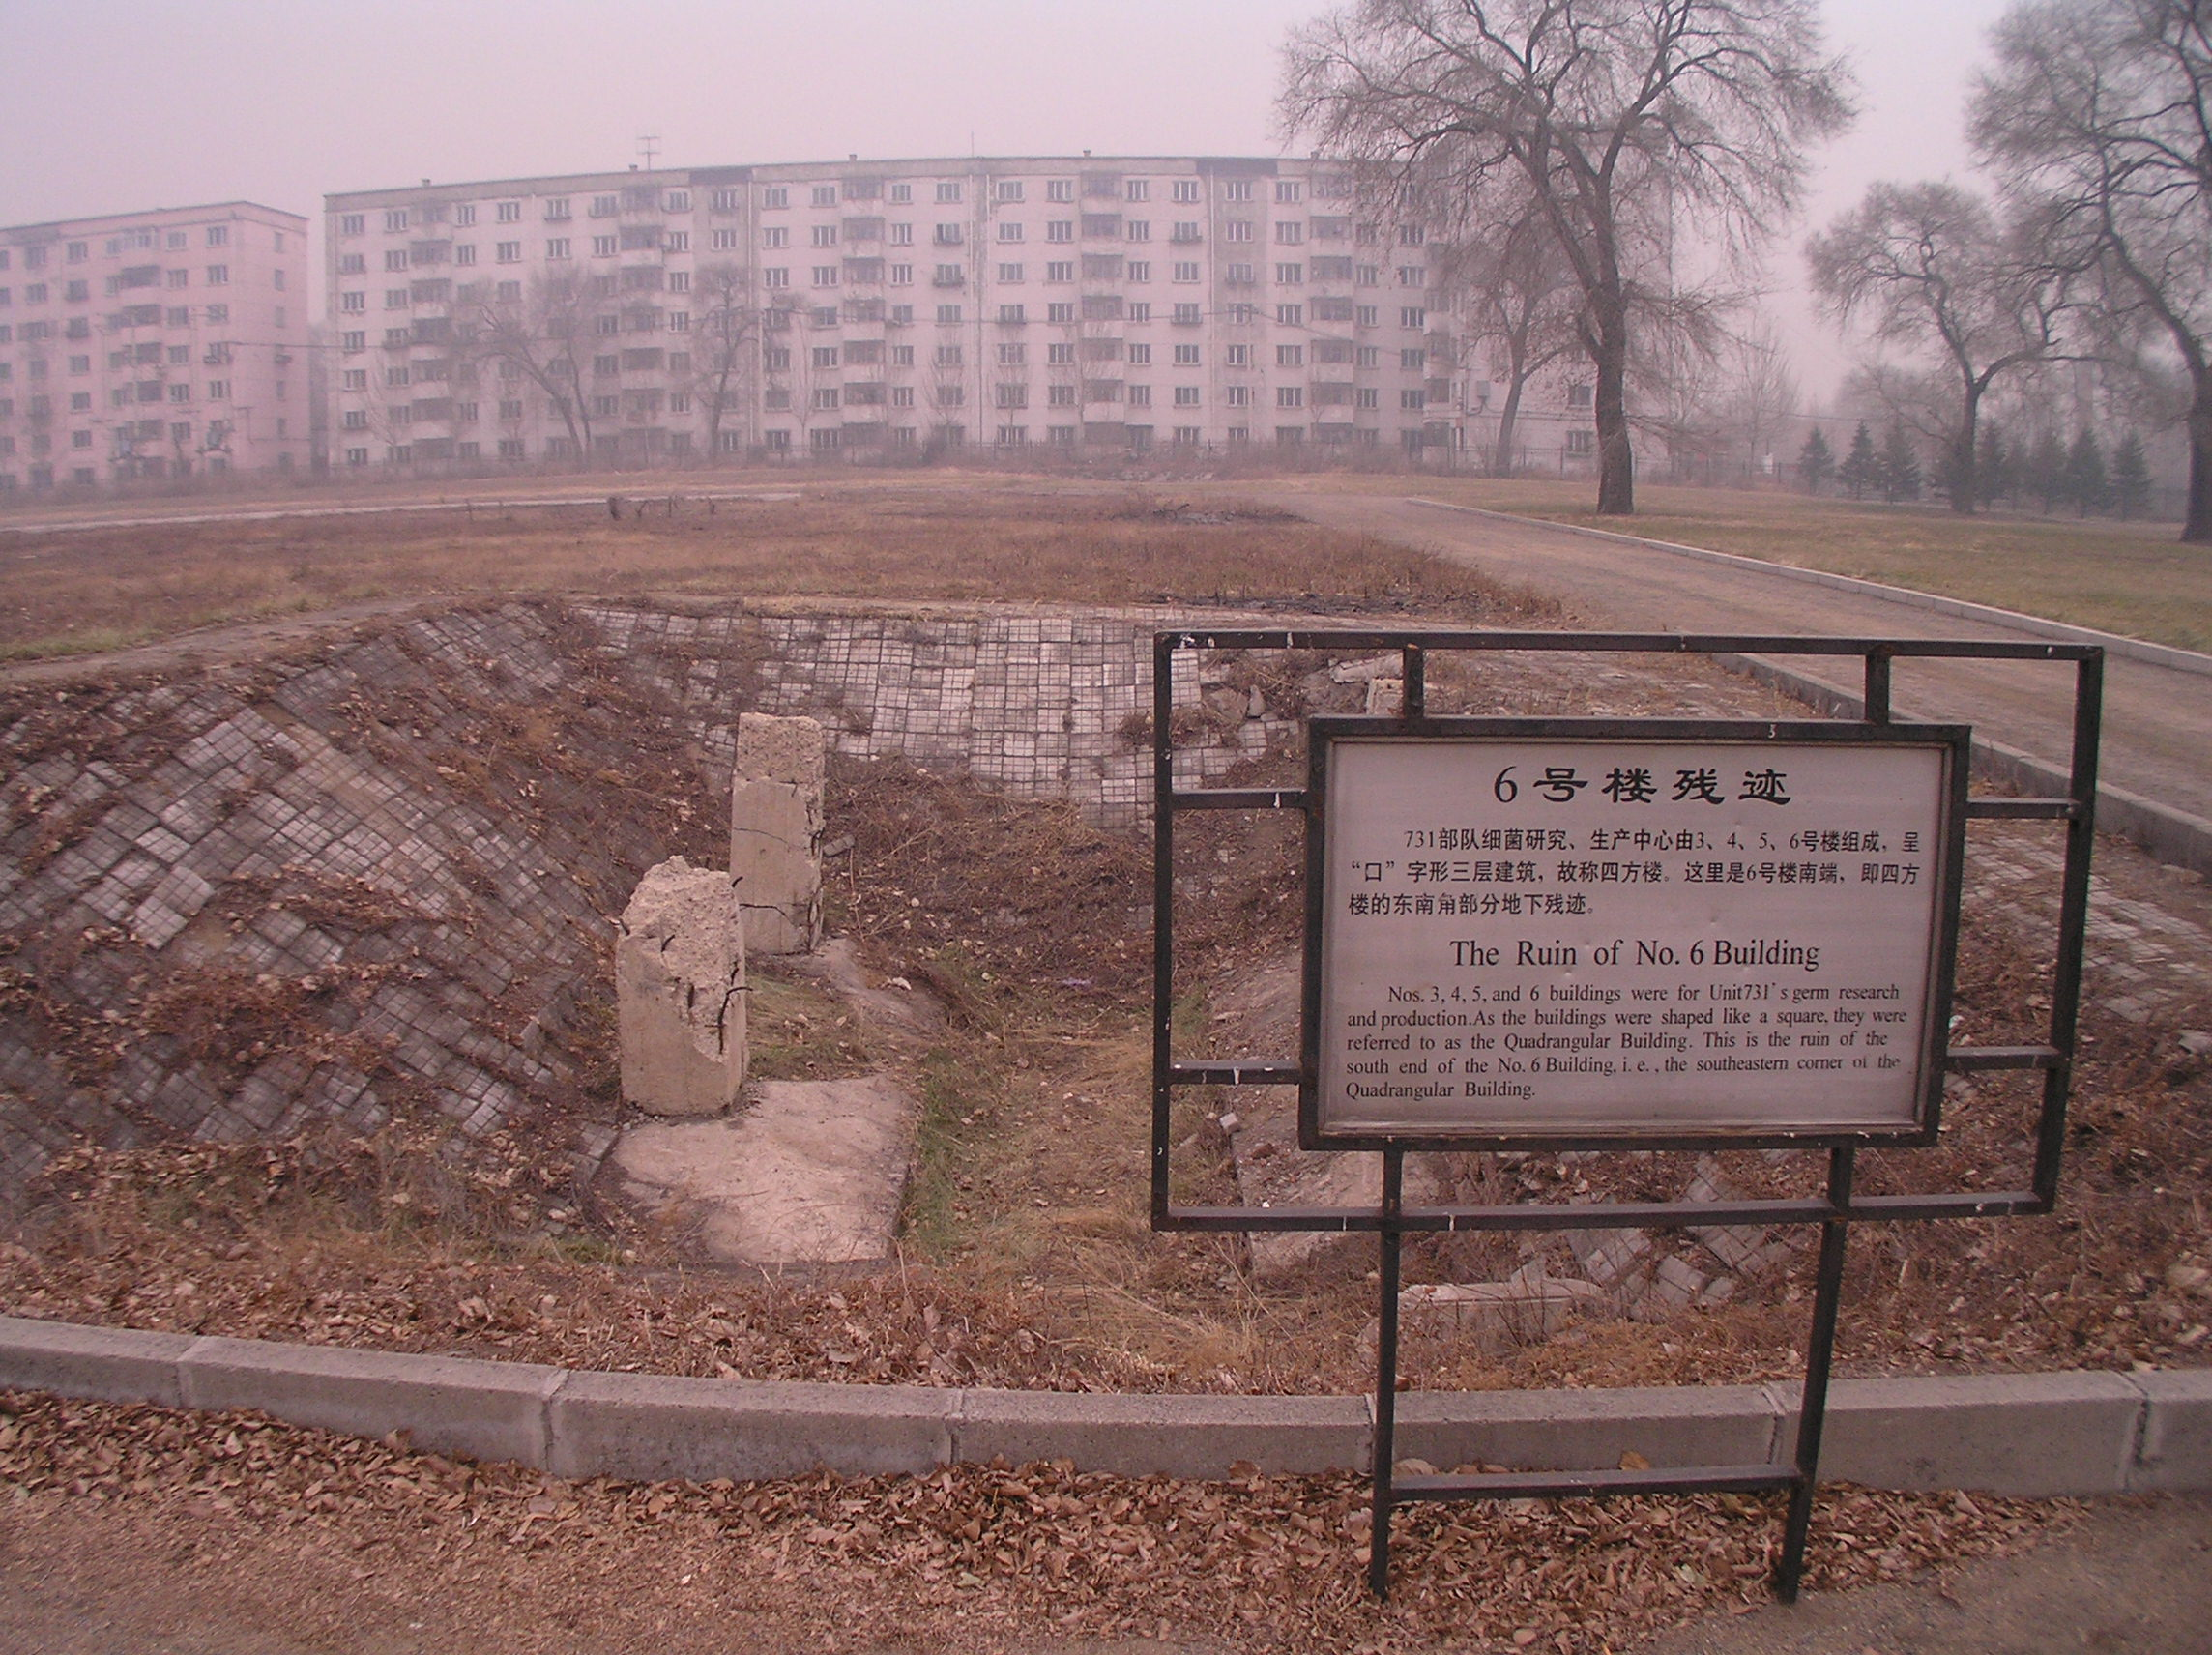 Unit 731: The Barbaric Concentration Camp Nobody Knows About Building on the site of the Harbin bioweapon facility of Unit 731 関東軍防疫給水部本部731部隊(石井部隊)日軍第731部隊旧址 PB121182